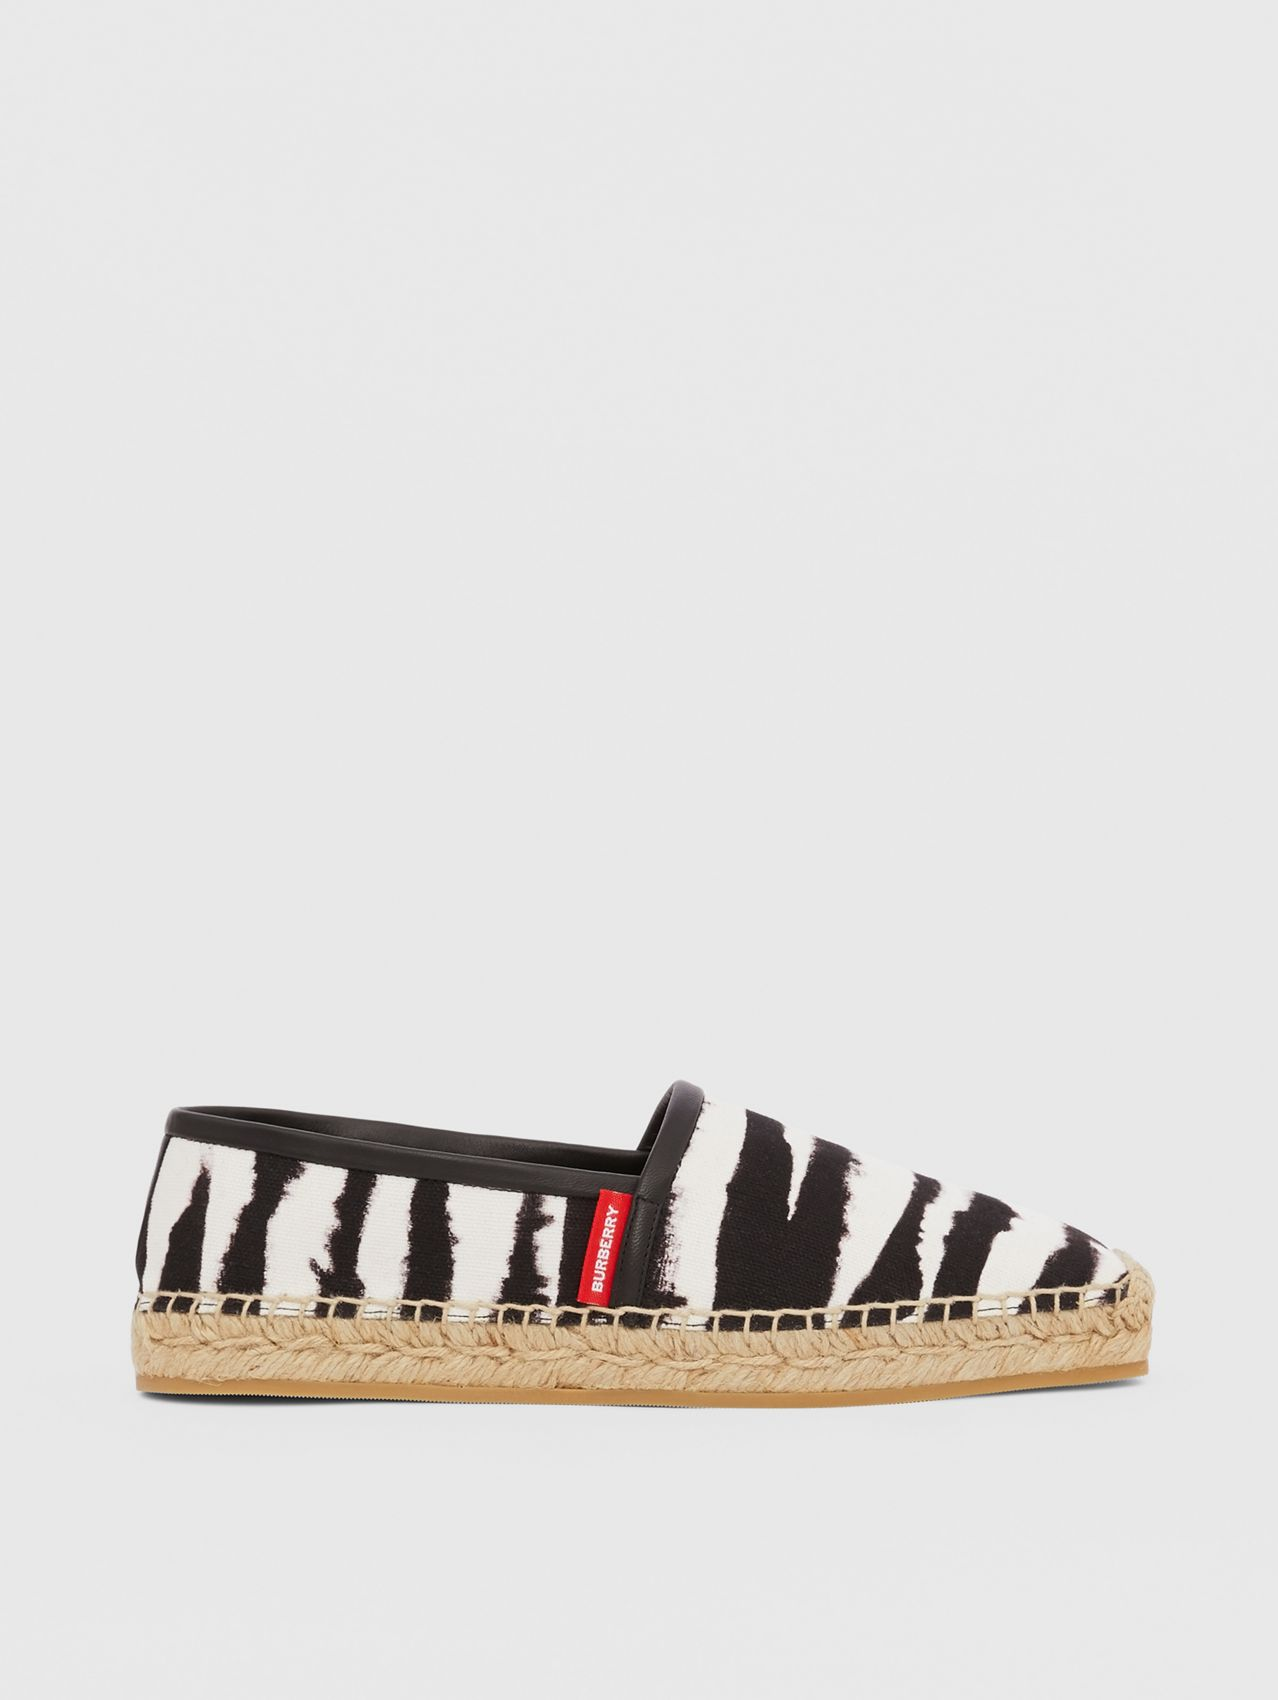 Watercolour Print Cotton Canvas Espadrilles (Black/white)